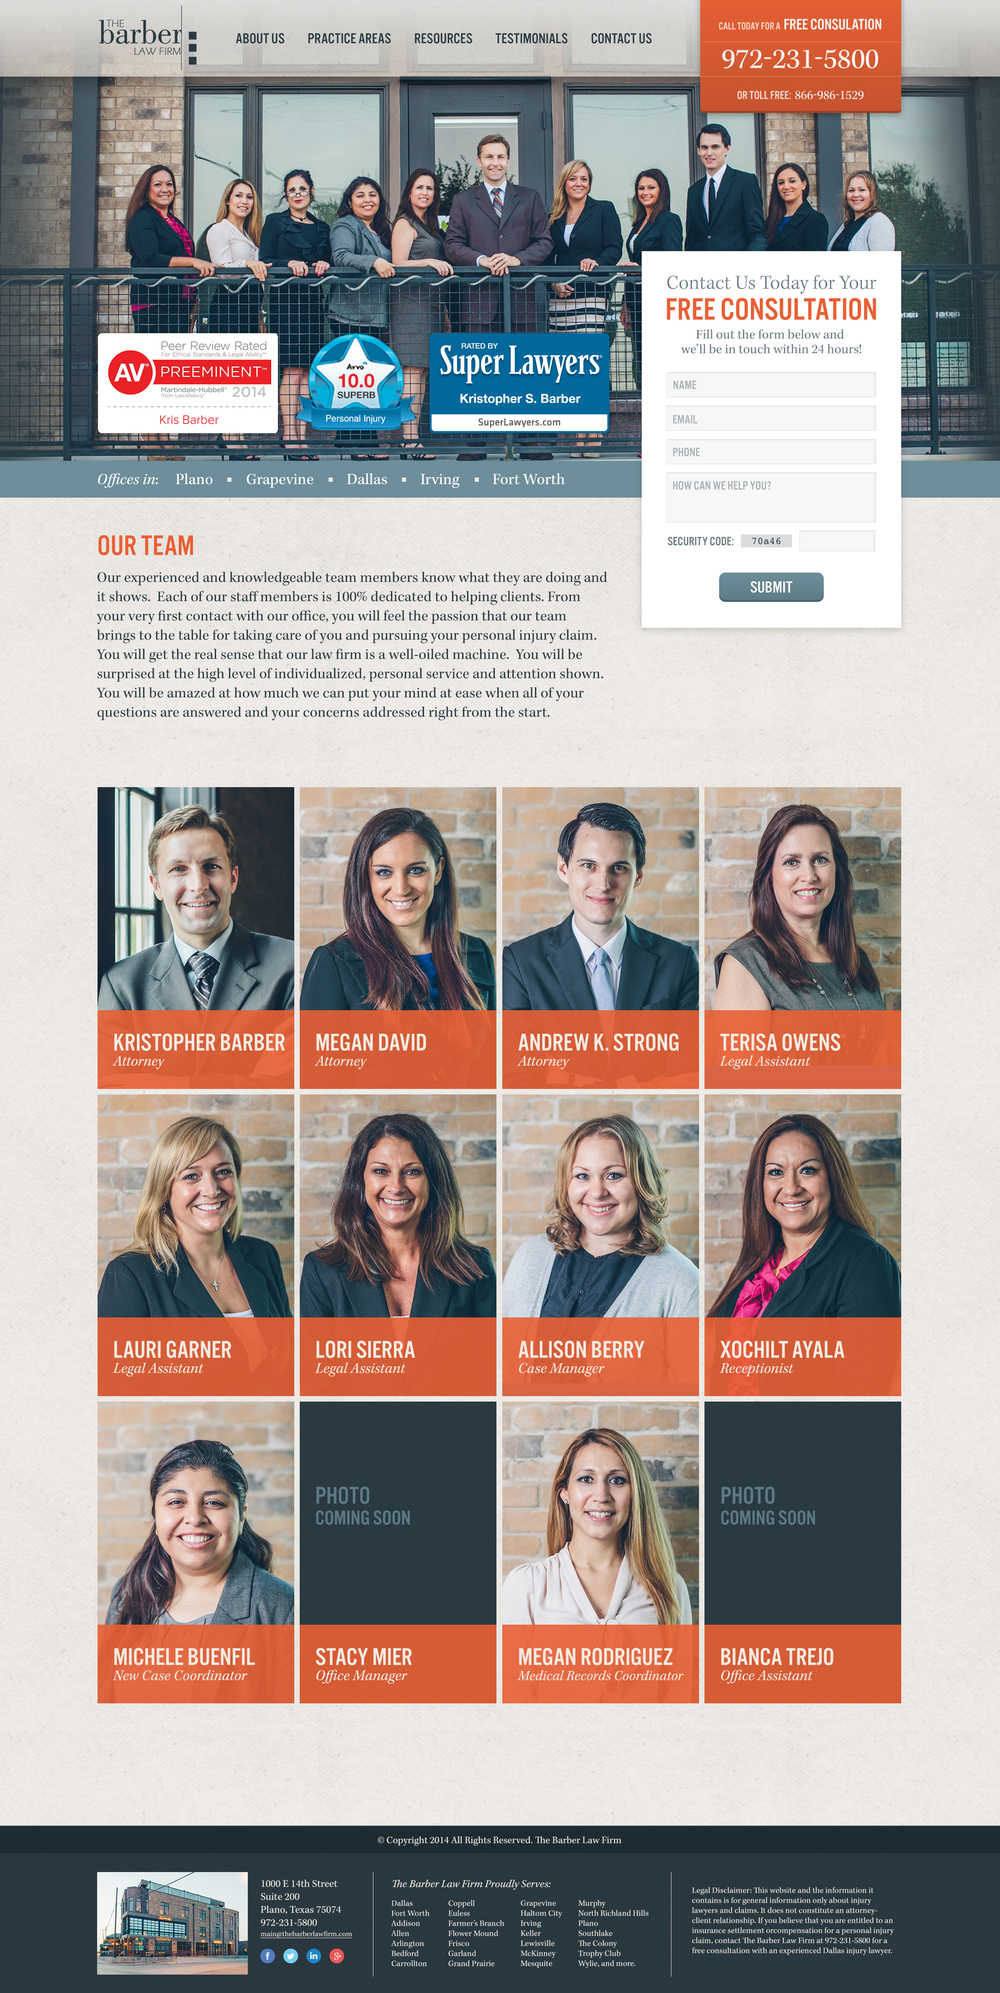 The Barber Law Firm : Personal injury attorney based in North Texas (Our Team page shown) |  Developed by Caleb White